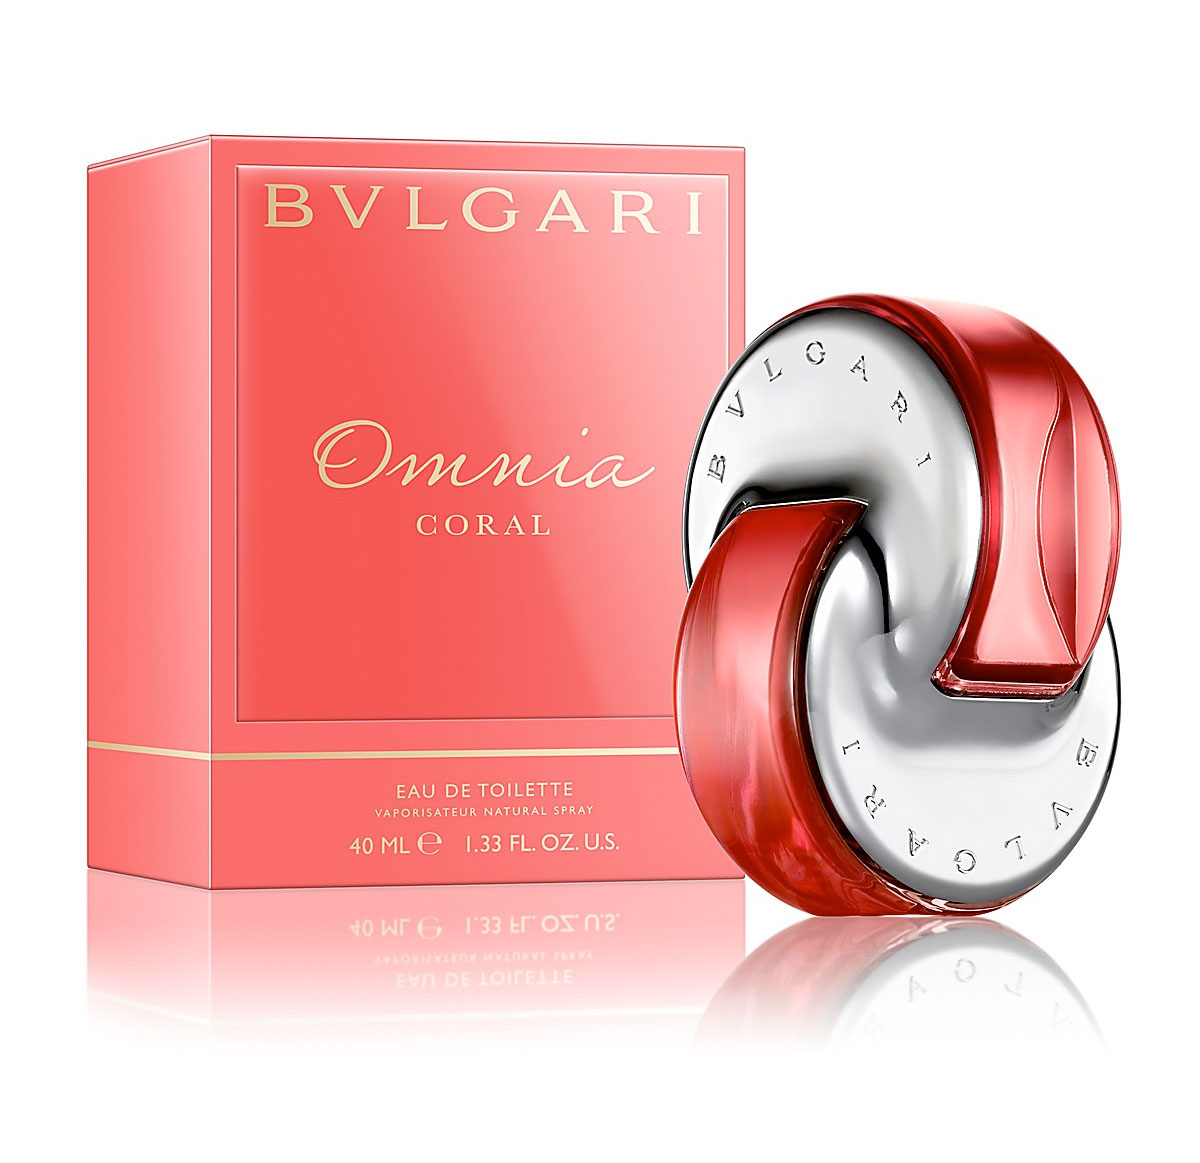 omnia coral bvlgari perfume a fragrance for women 2012. Black Bedroom Furniture Sets. Home Design Ideas